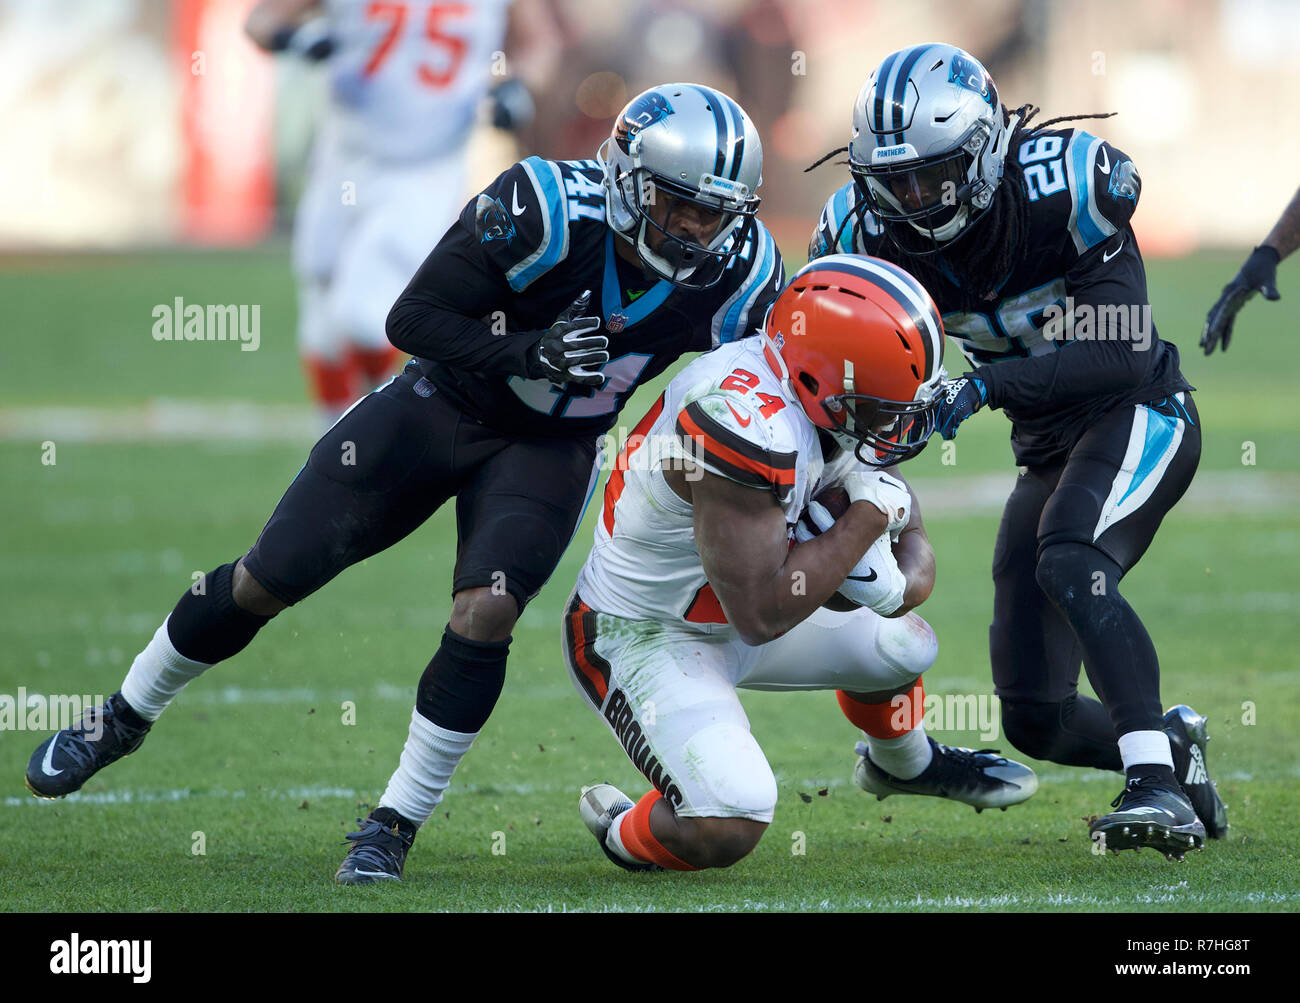 328faa01 Cleveland, Ohio, USA. 9th Dec, 2018. Cleveland Browns running back ...